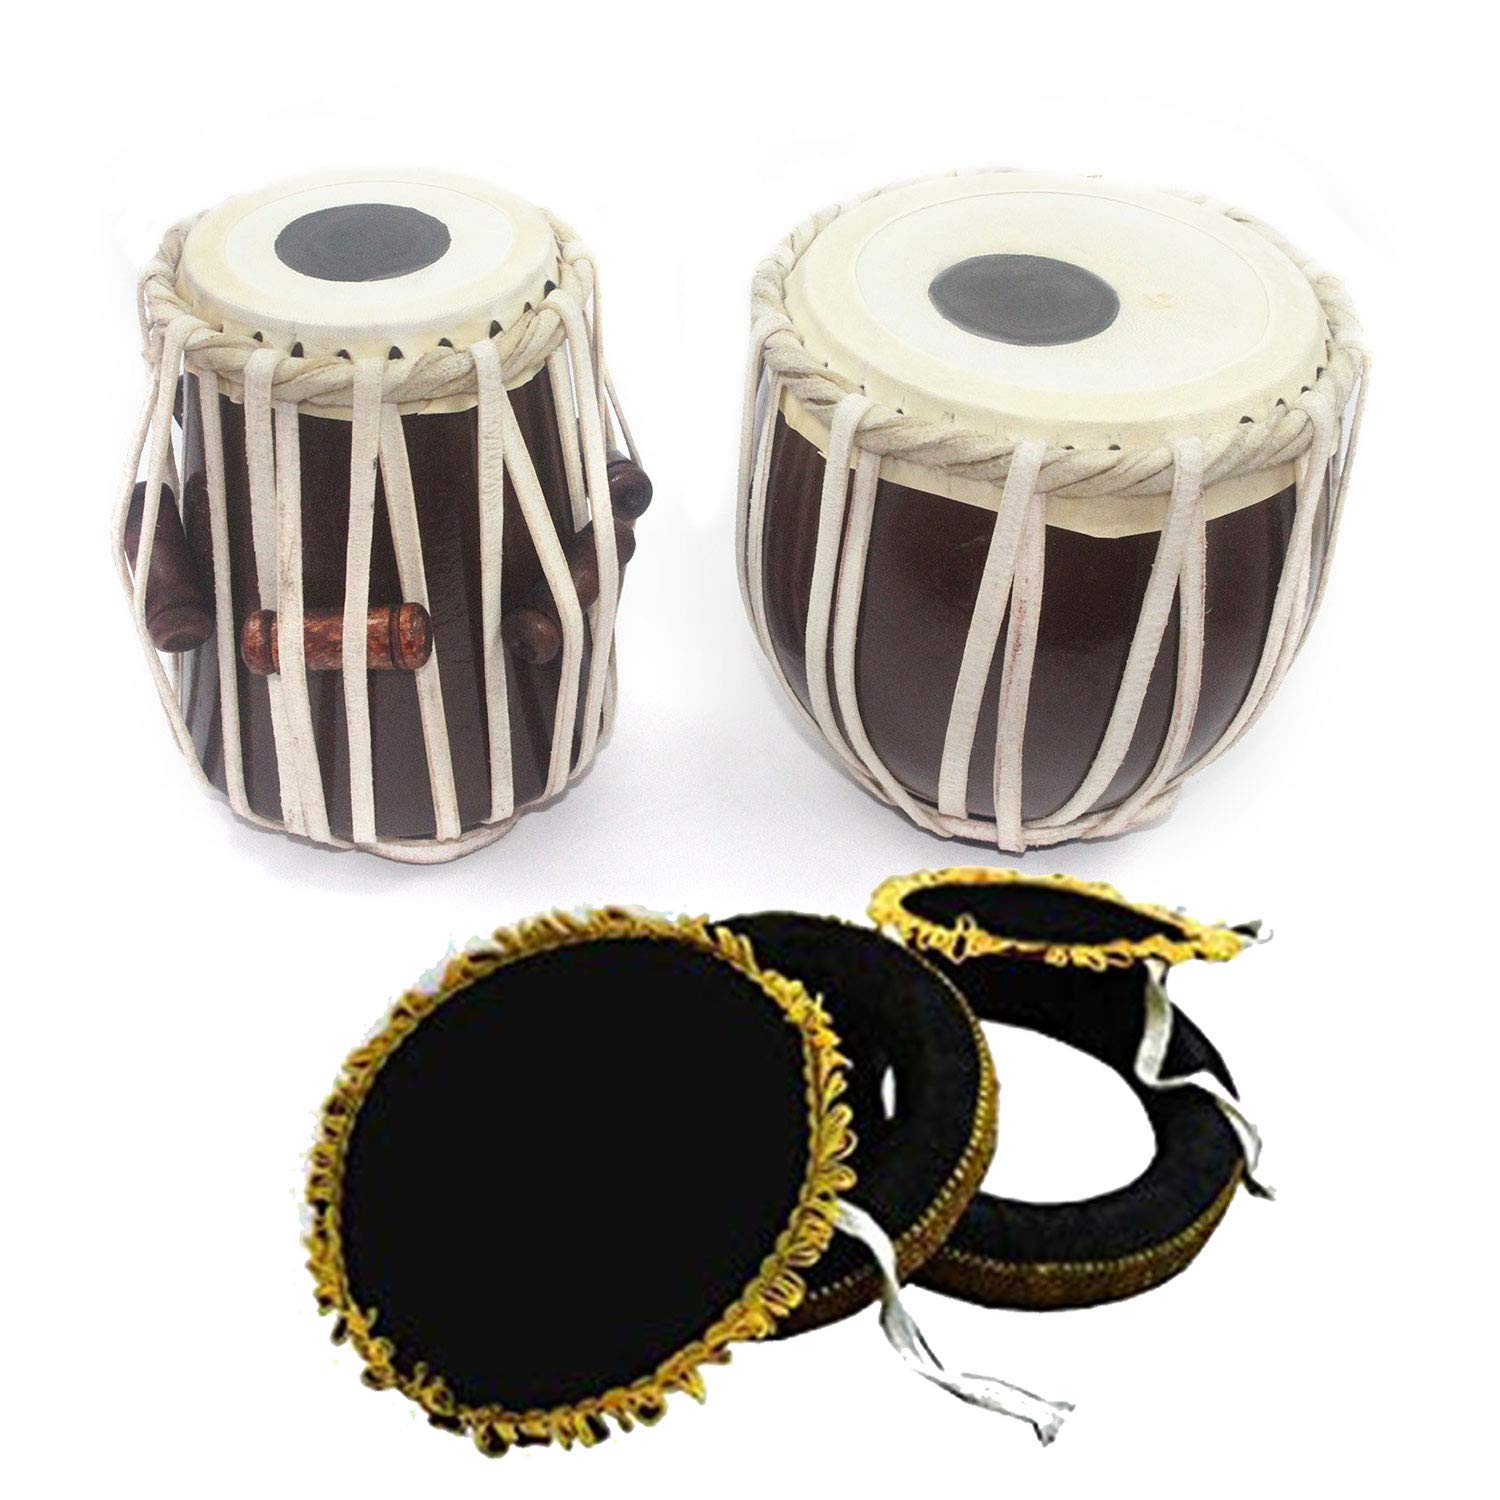 Tabla Set 7'' Handmade for Upto 8 Year Kids | Traditional Indian Instrument I Handmade by Awarded Indian Artisan